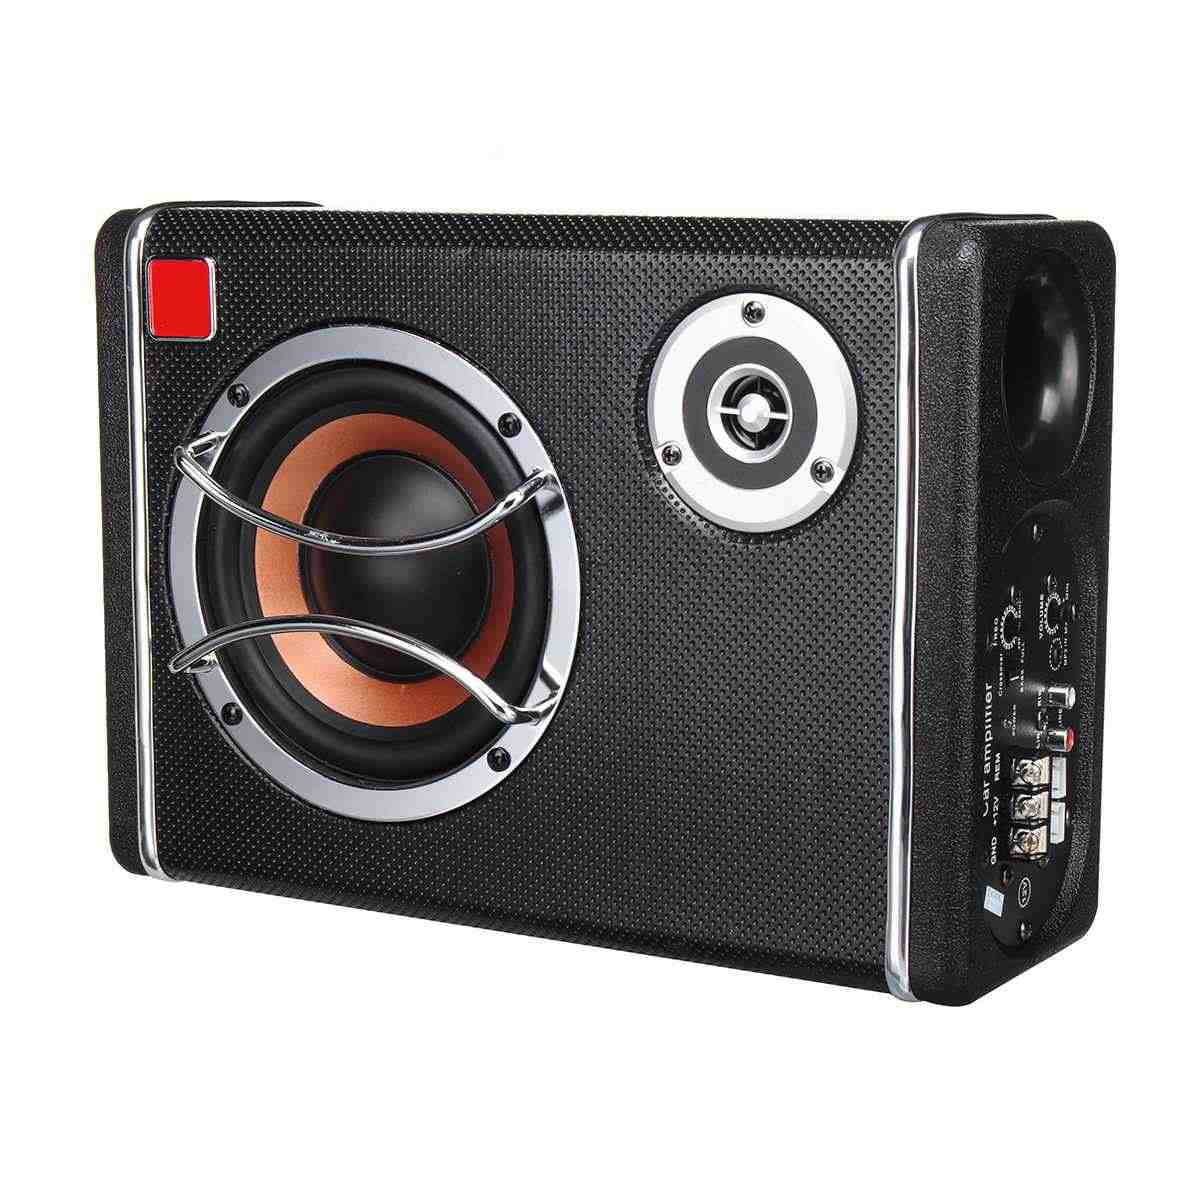 6inch 400W Active Powered Car Audio Subwoofer Stereo Bass Speaker Amp Sub Box 12V Car Subwoofers Car Audio Car Speaker